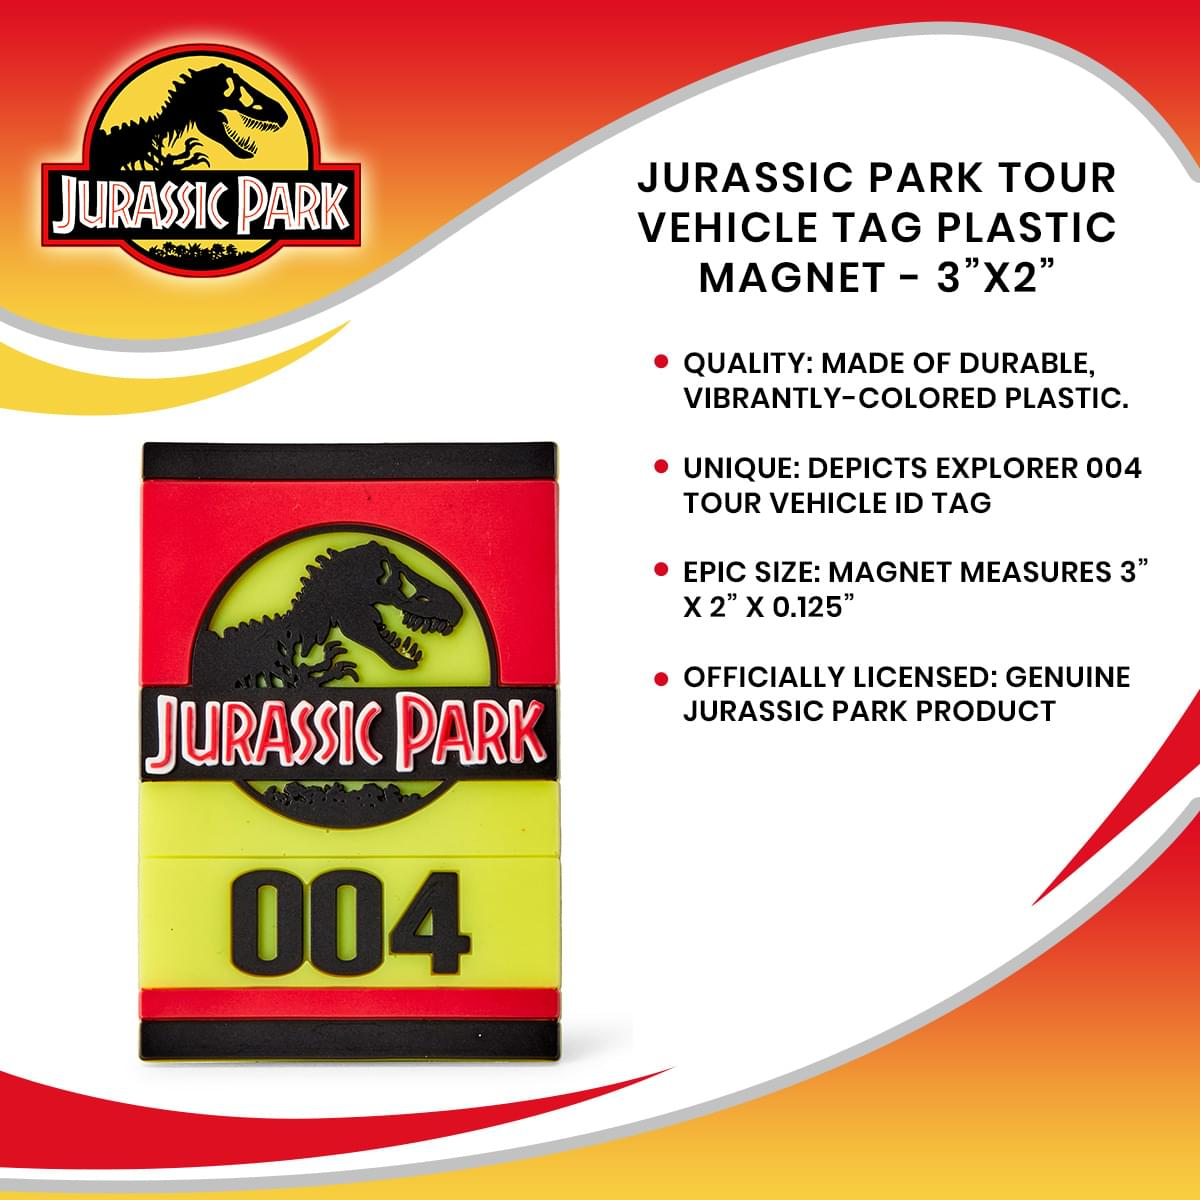 "Jurassic Park Tour Vehicle Tag Plastic Magnet - 3""x2"""